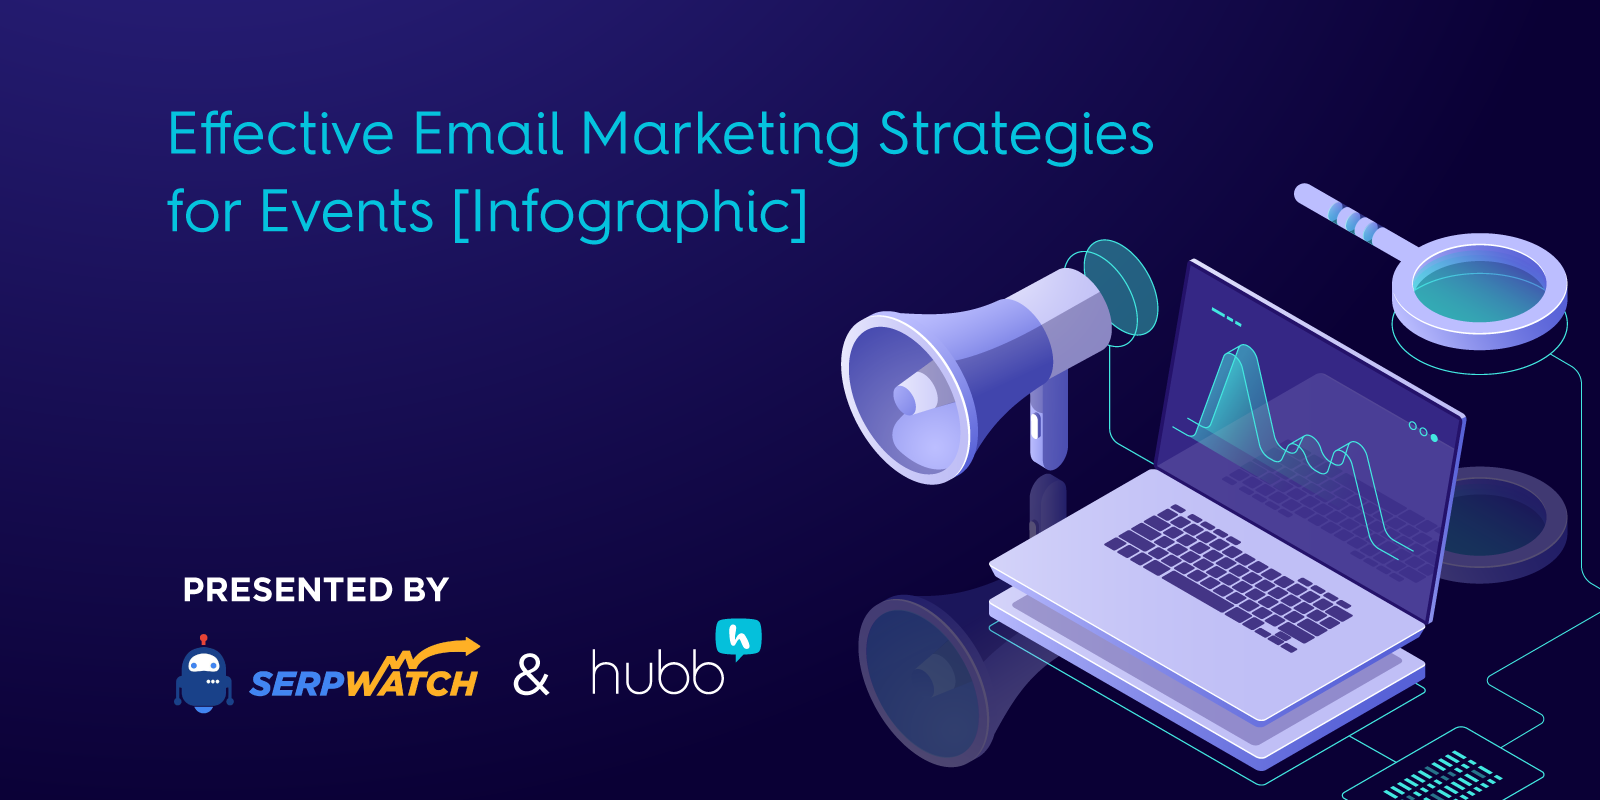 Effective Email Marketing Strategies for Events [Infographic]